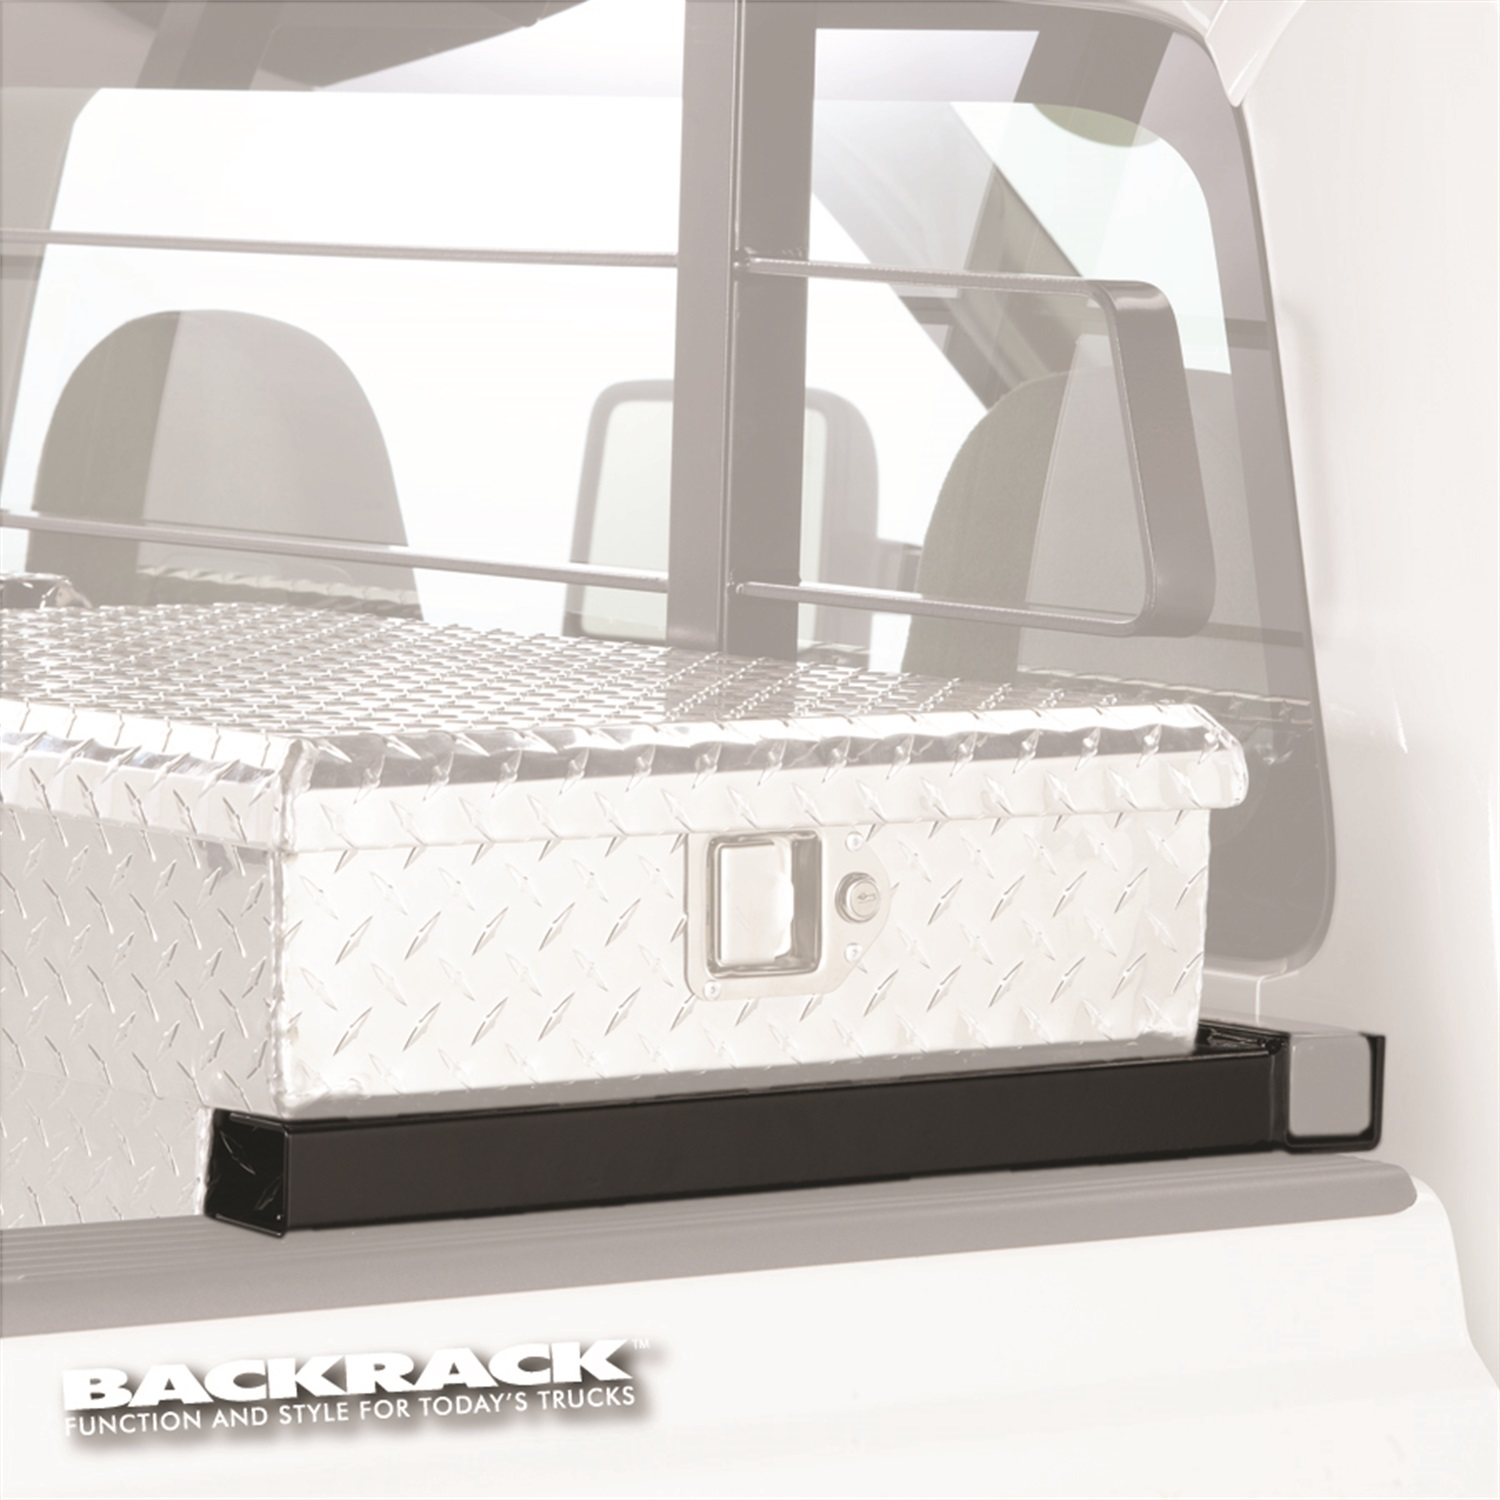 Backrack Truck Tool Box Mounting Kit